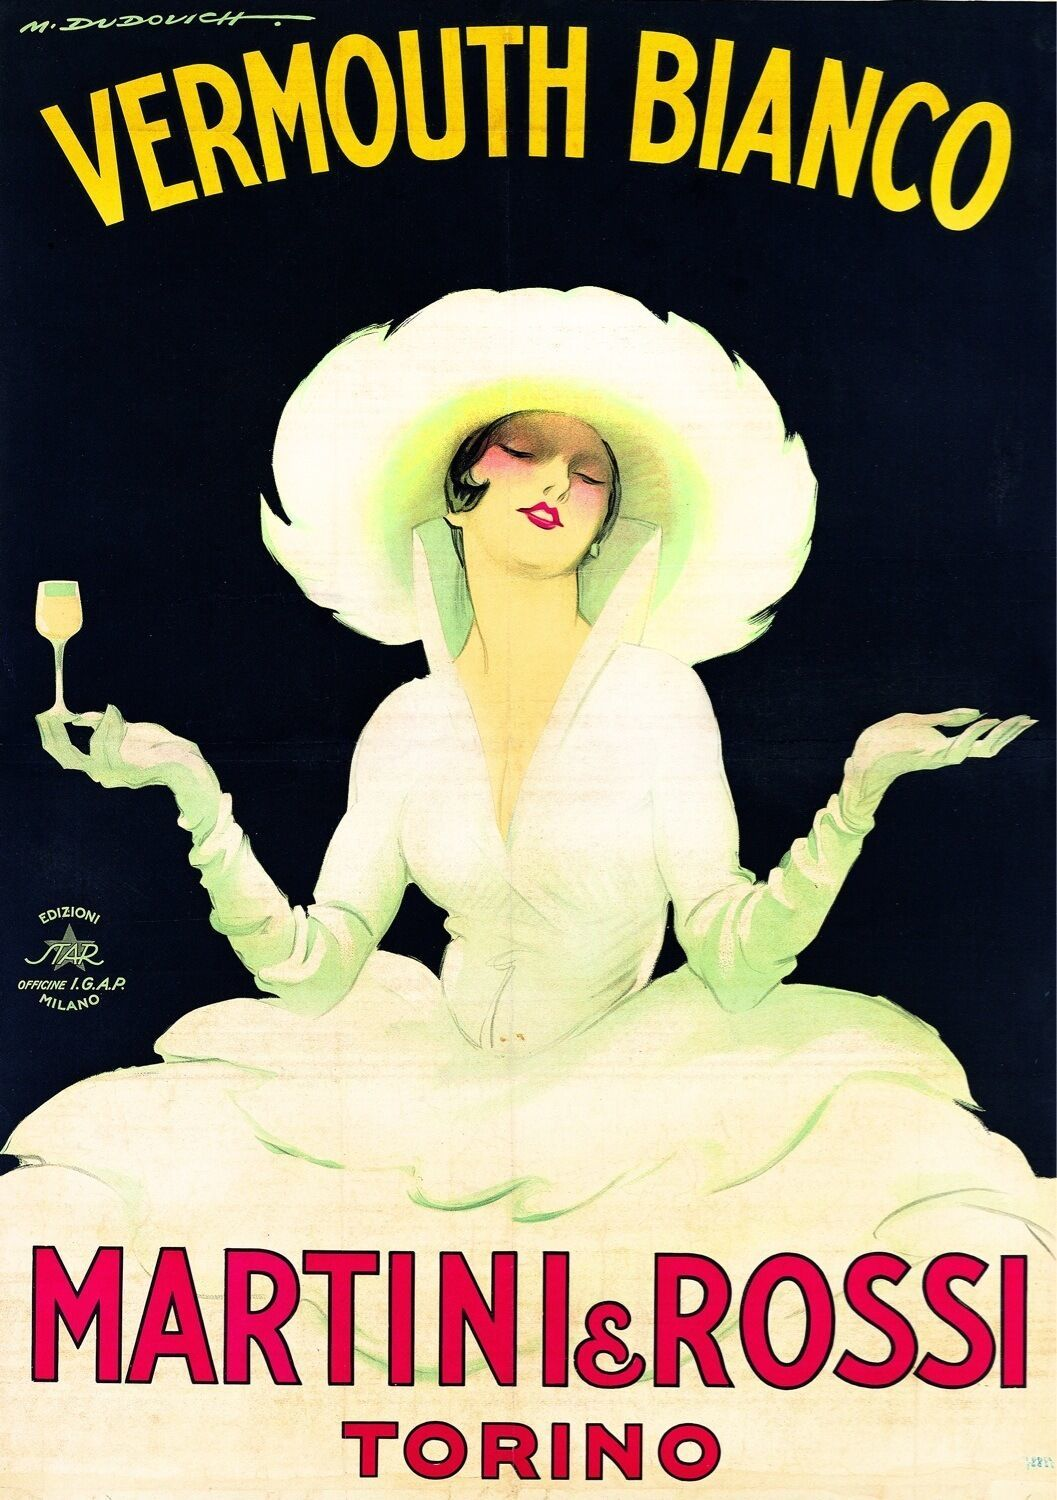 3496.Martini Rossi Vermouth liquor wine POSTER.Italian art.Room Home Bar decor